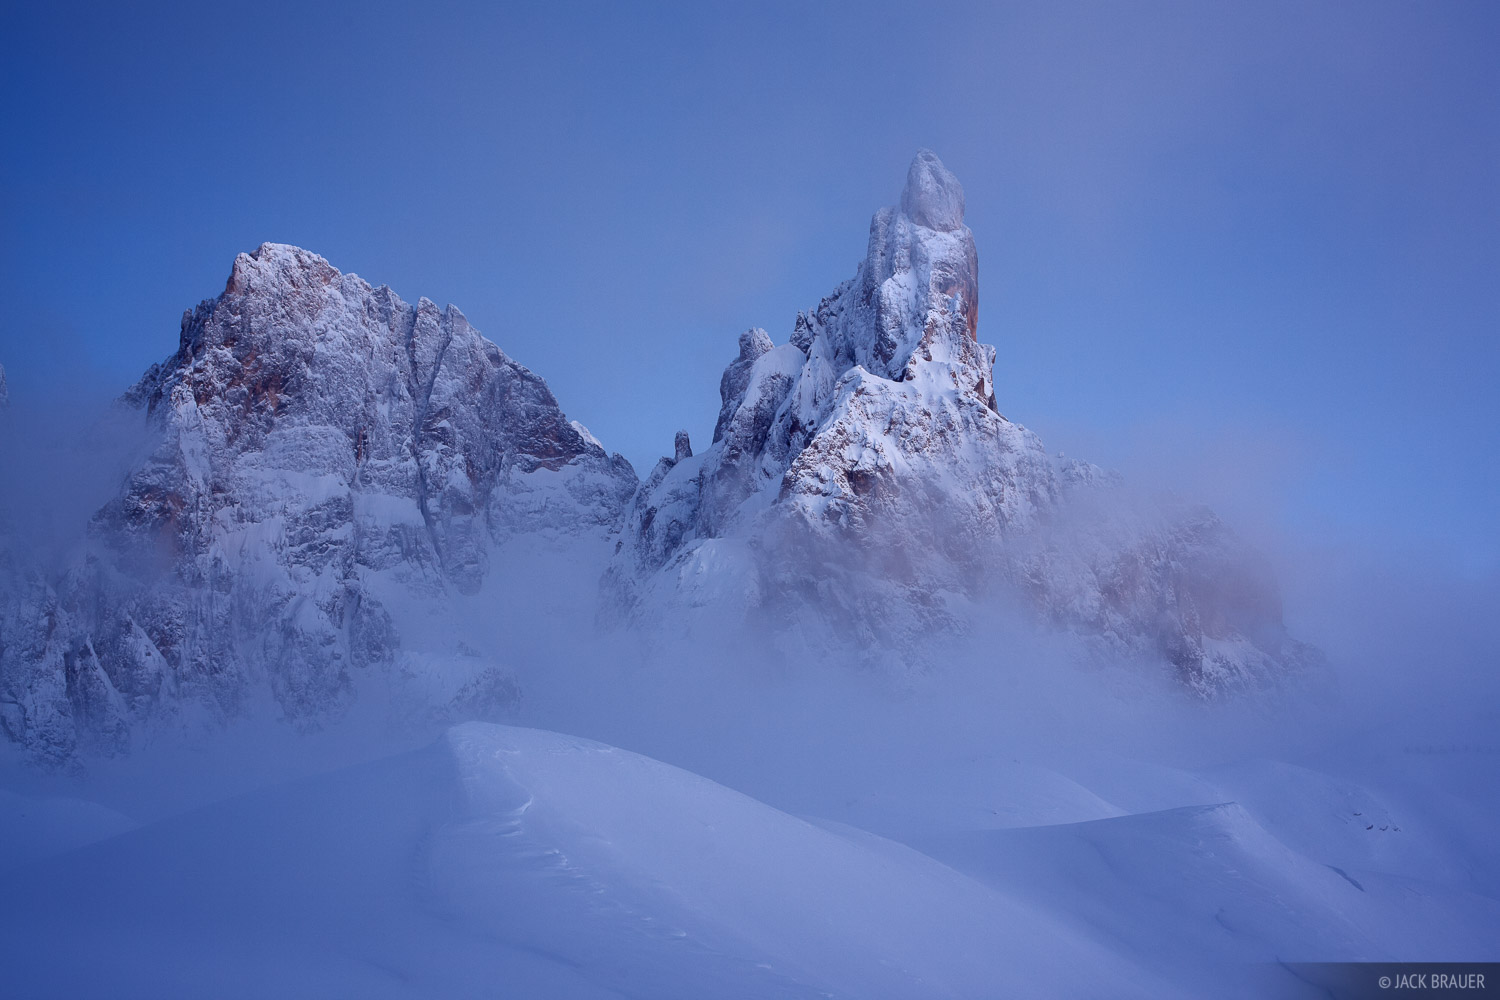 Cimon della Pala, Dolomites, Italy, winter, Alps, photo